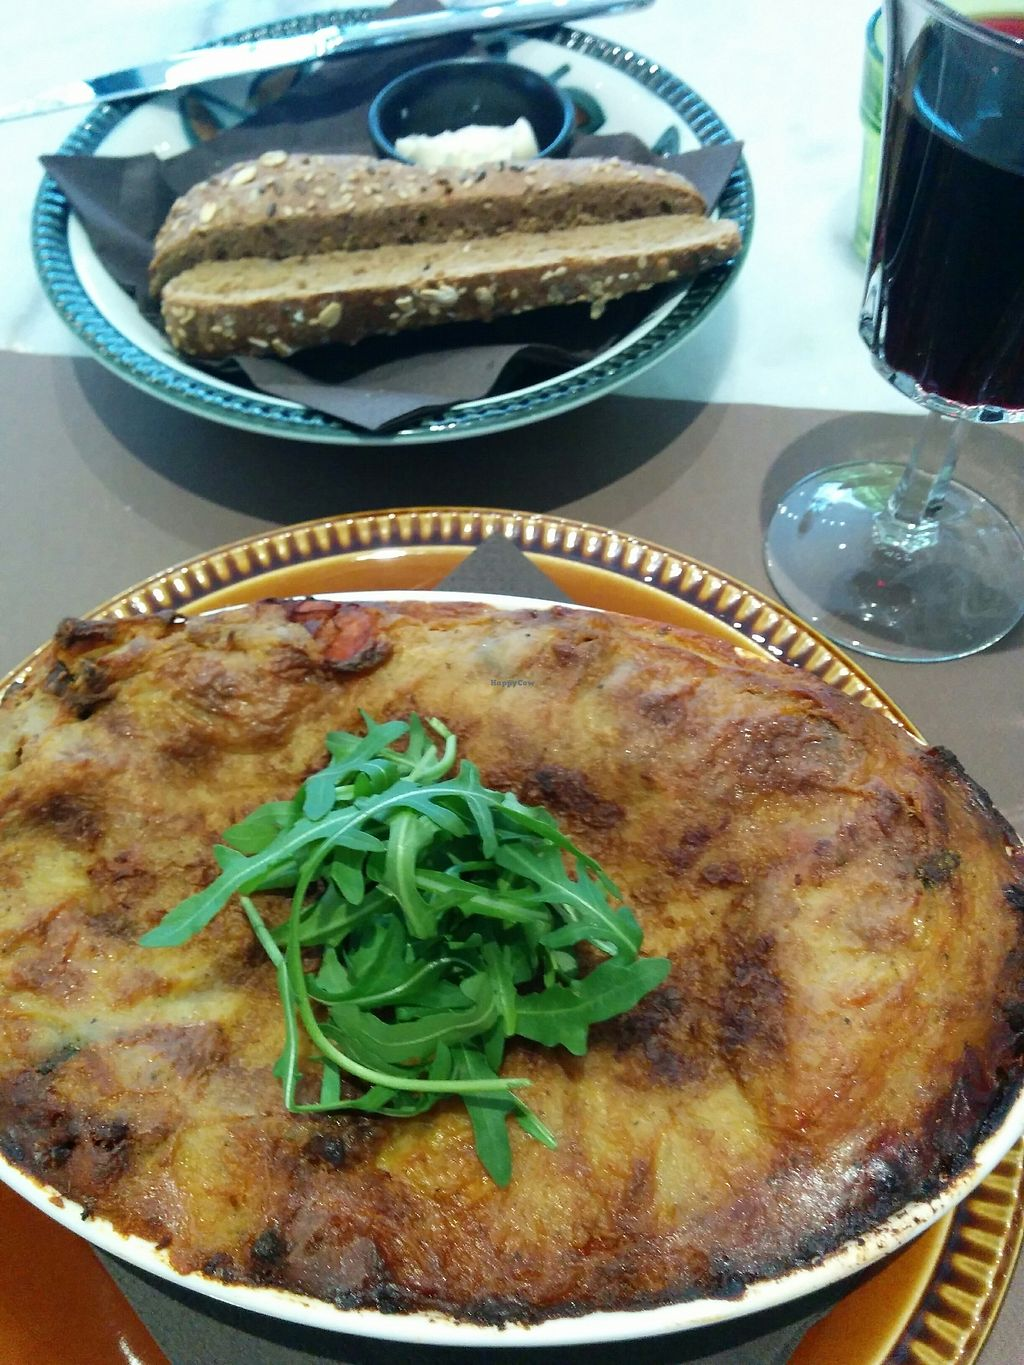 """Photo of Recollets  by <a href=""""/members/profile/CLRtraveller"""">CLRtraveller</a> <br/>Lasagne Bolognese <br/> February 14, 2018  - <a href='/contact/abuse/image/97130/359389'>Report</a>"""